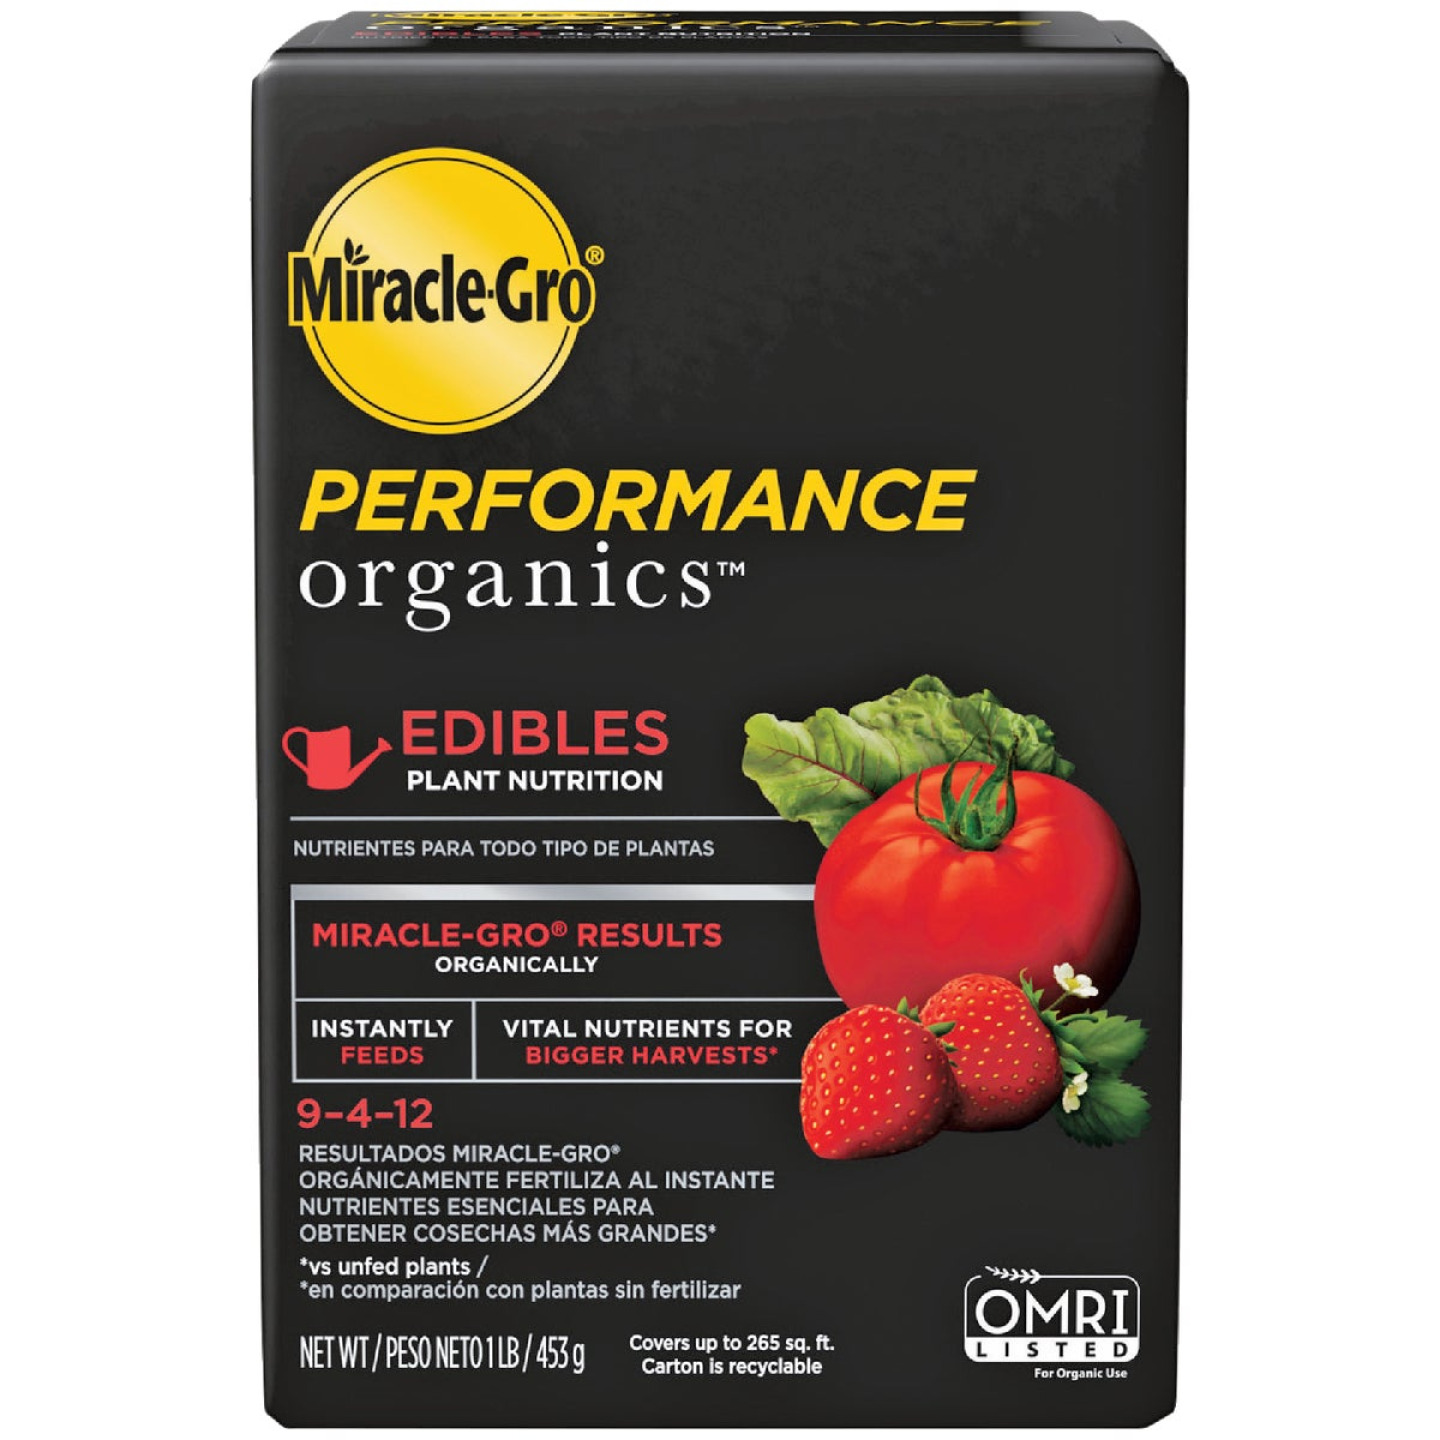 Miracle-Gro Performance Organics 1 Lb. 9-4-12 Plant Food for Edibles Image 1